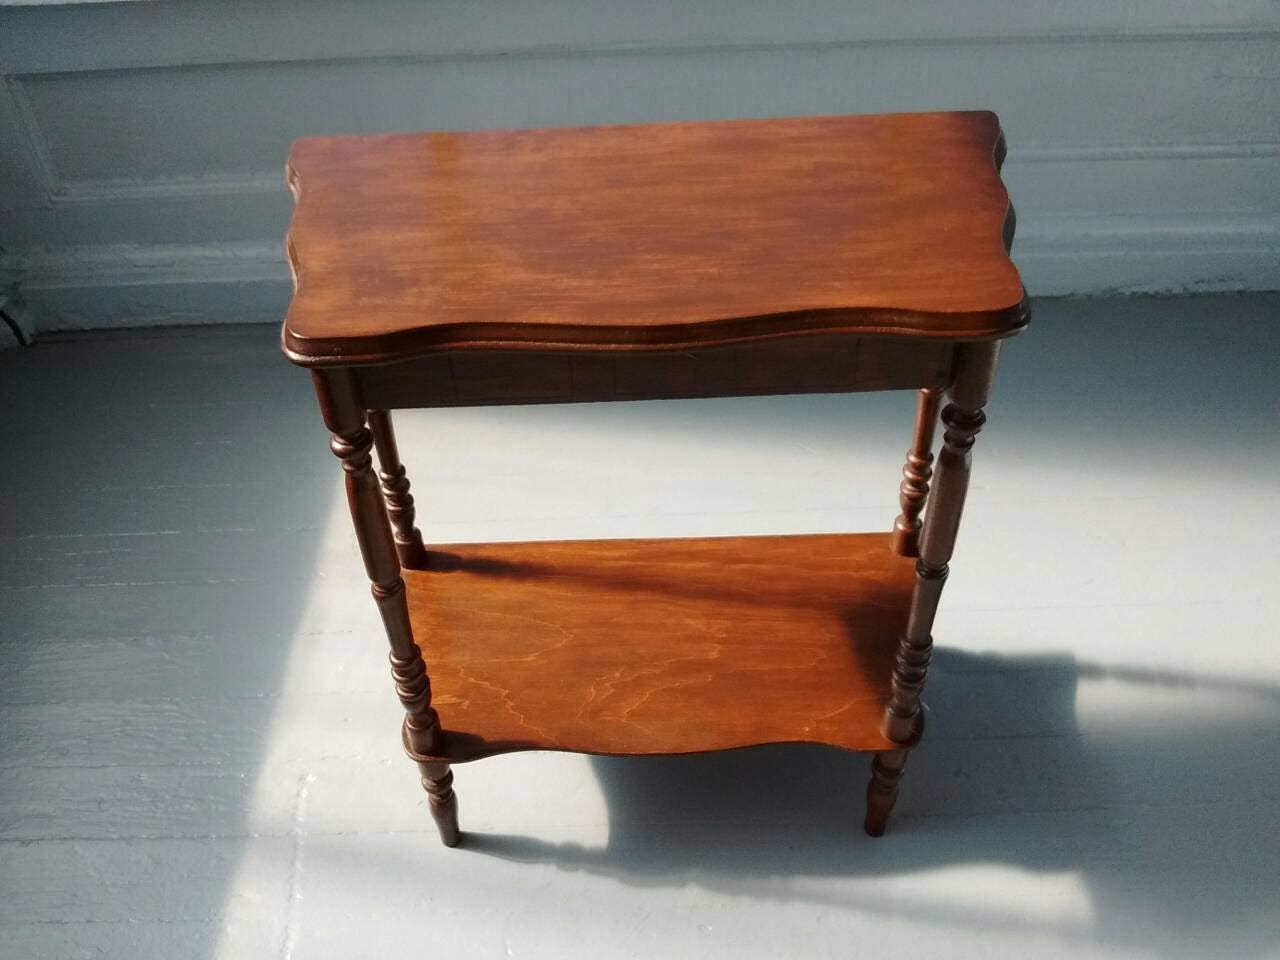 Vintage rustic end table side table sofa table plant for Sofa table for plants